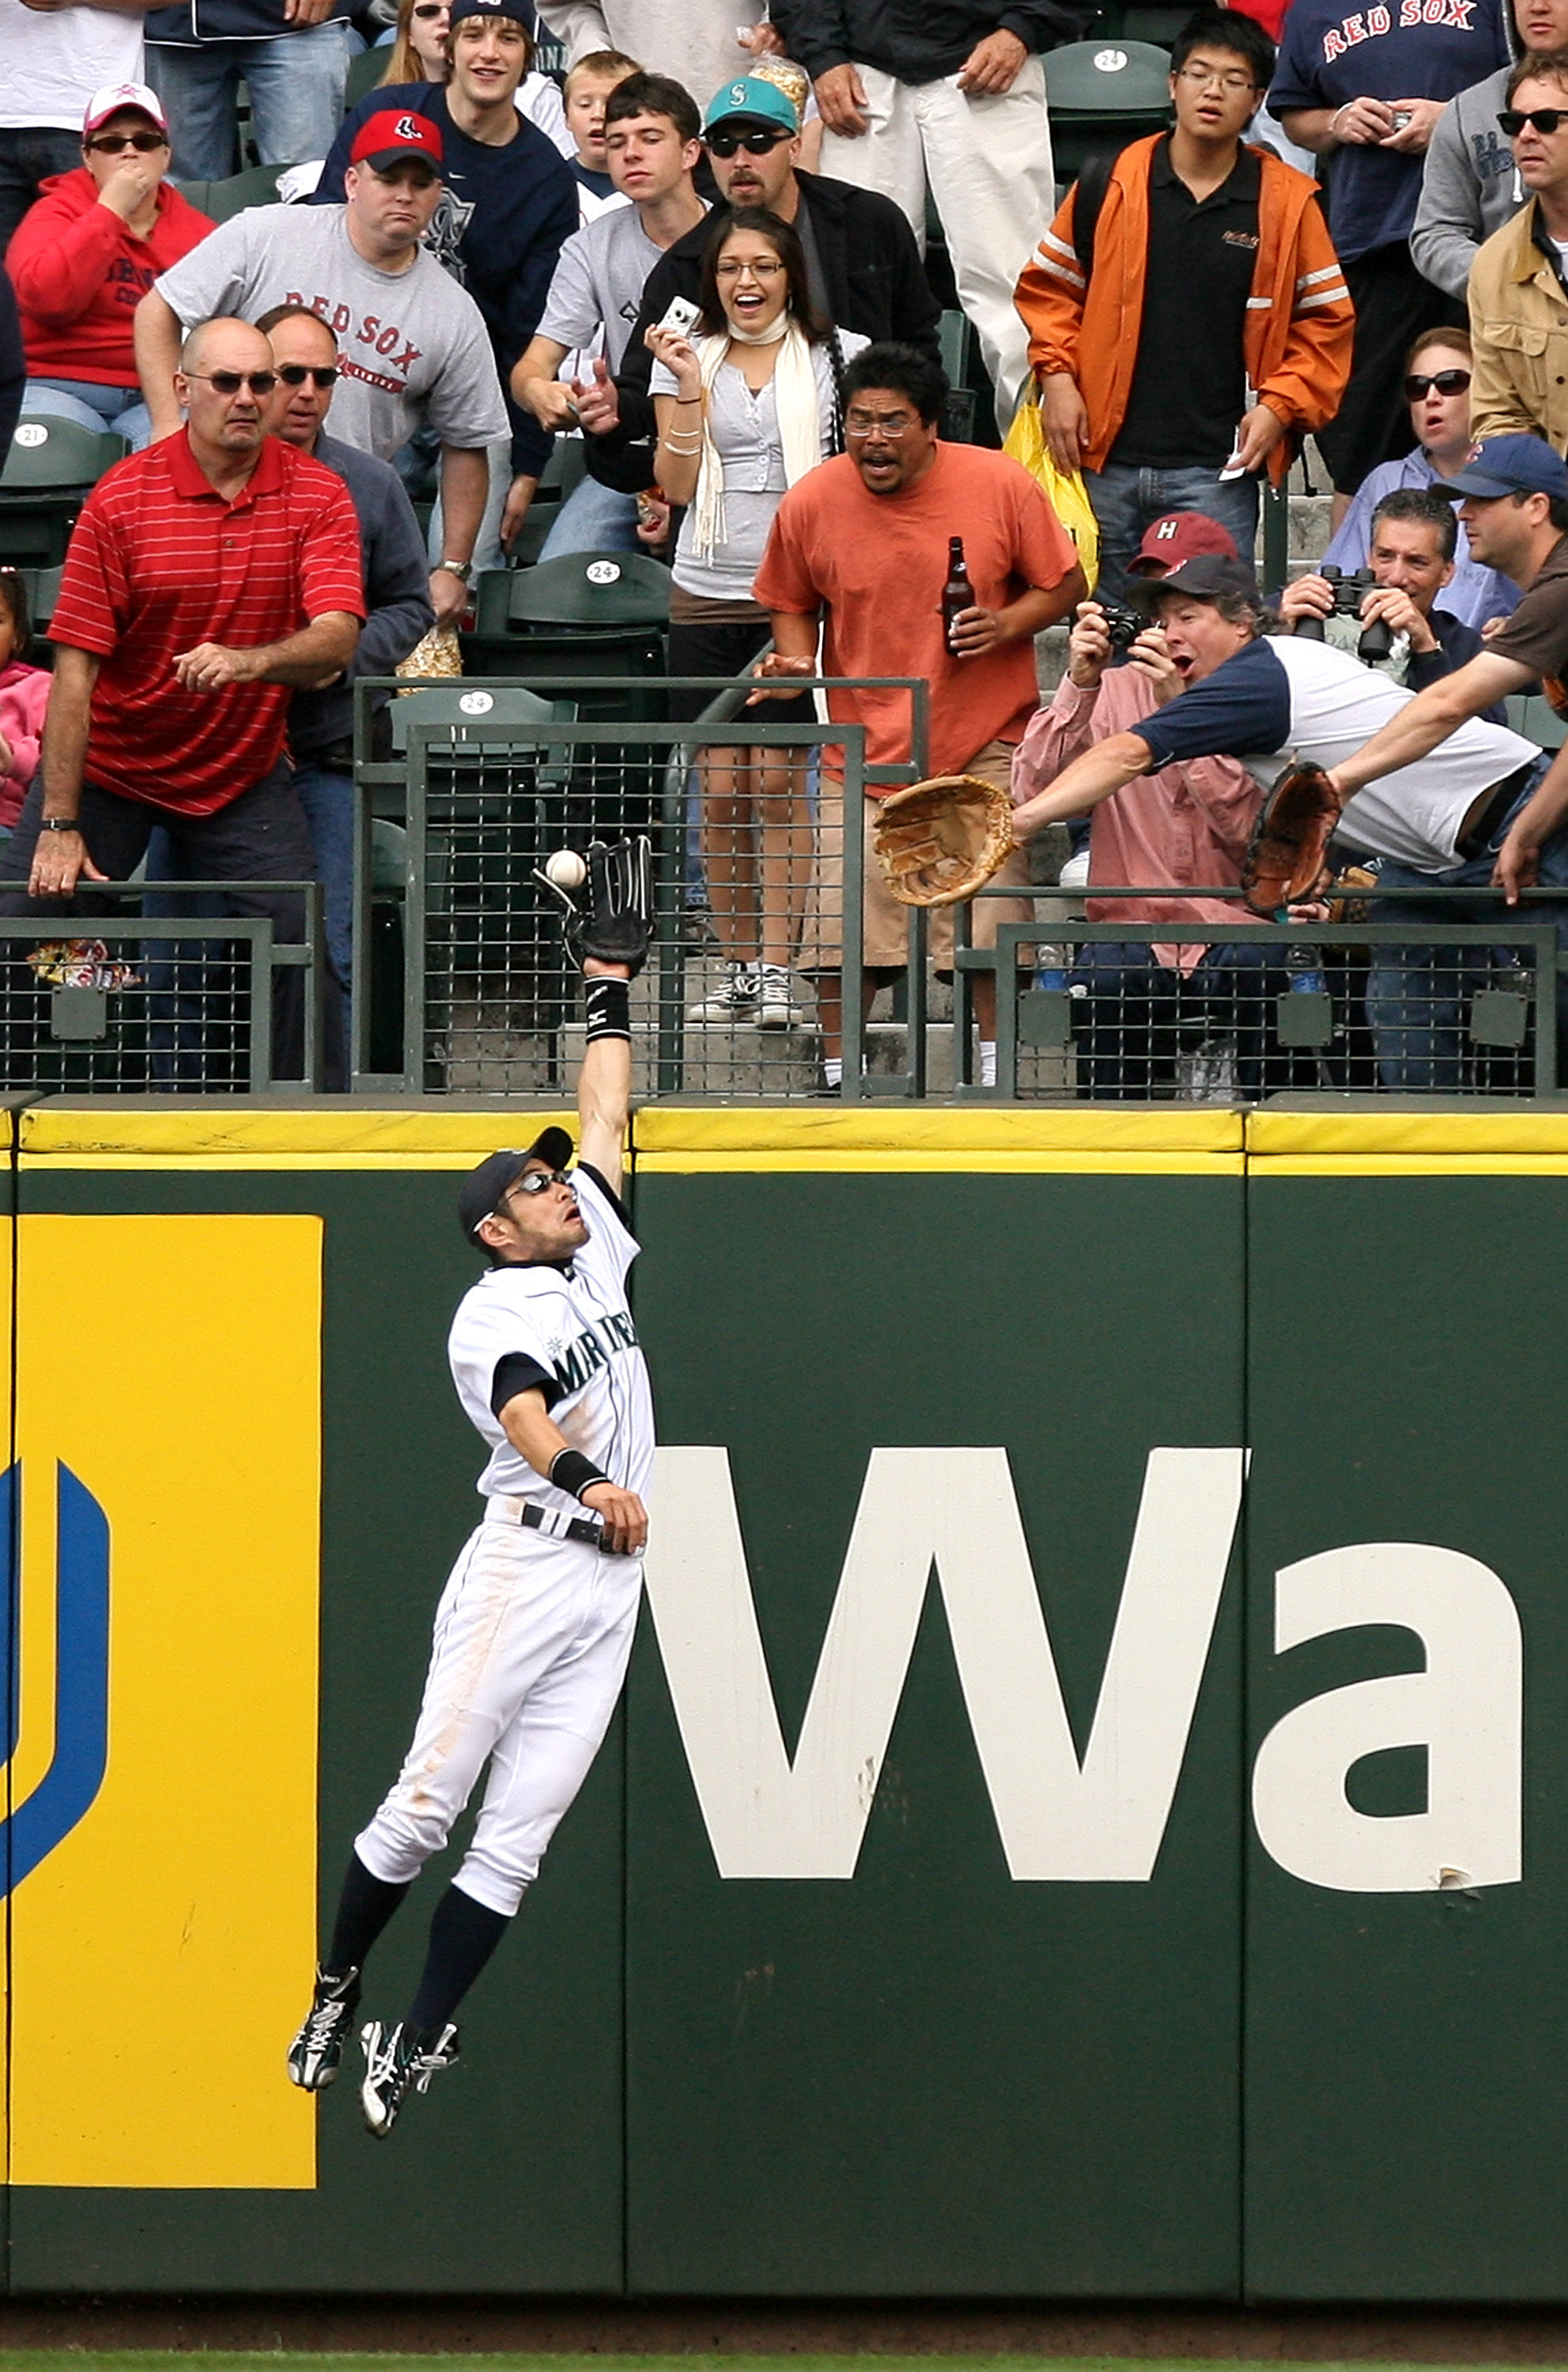 SEATTLE - JULY 23:  Ichiro Suzuki #51 of the Seattle Mariners makes a leaping catch of a ball hit by Dustin Pedroia of the Boston Red Sox on July 23, 2008 at Safeco Field in Seattle, Washington. (Photo by Otto Greule Jr/Getty Images)